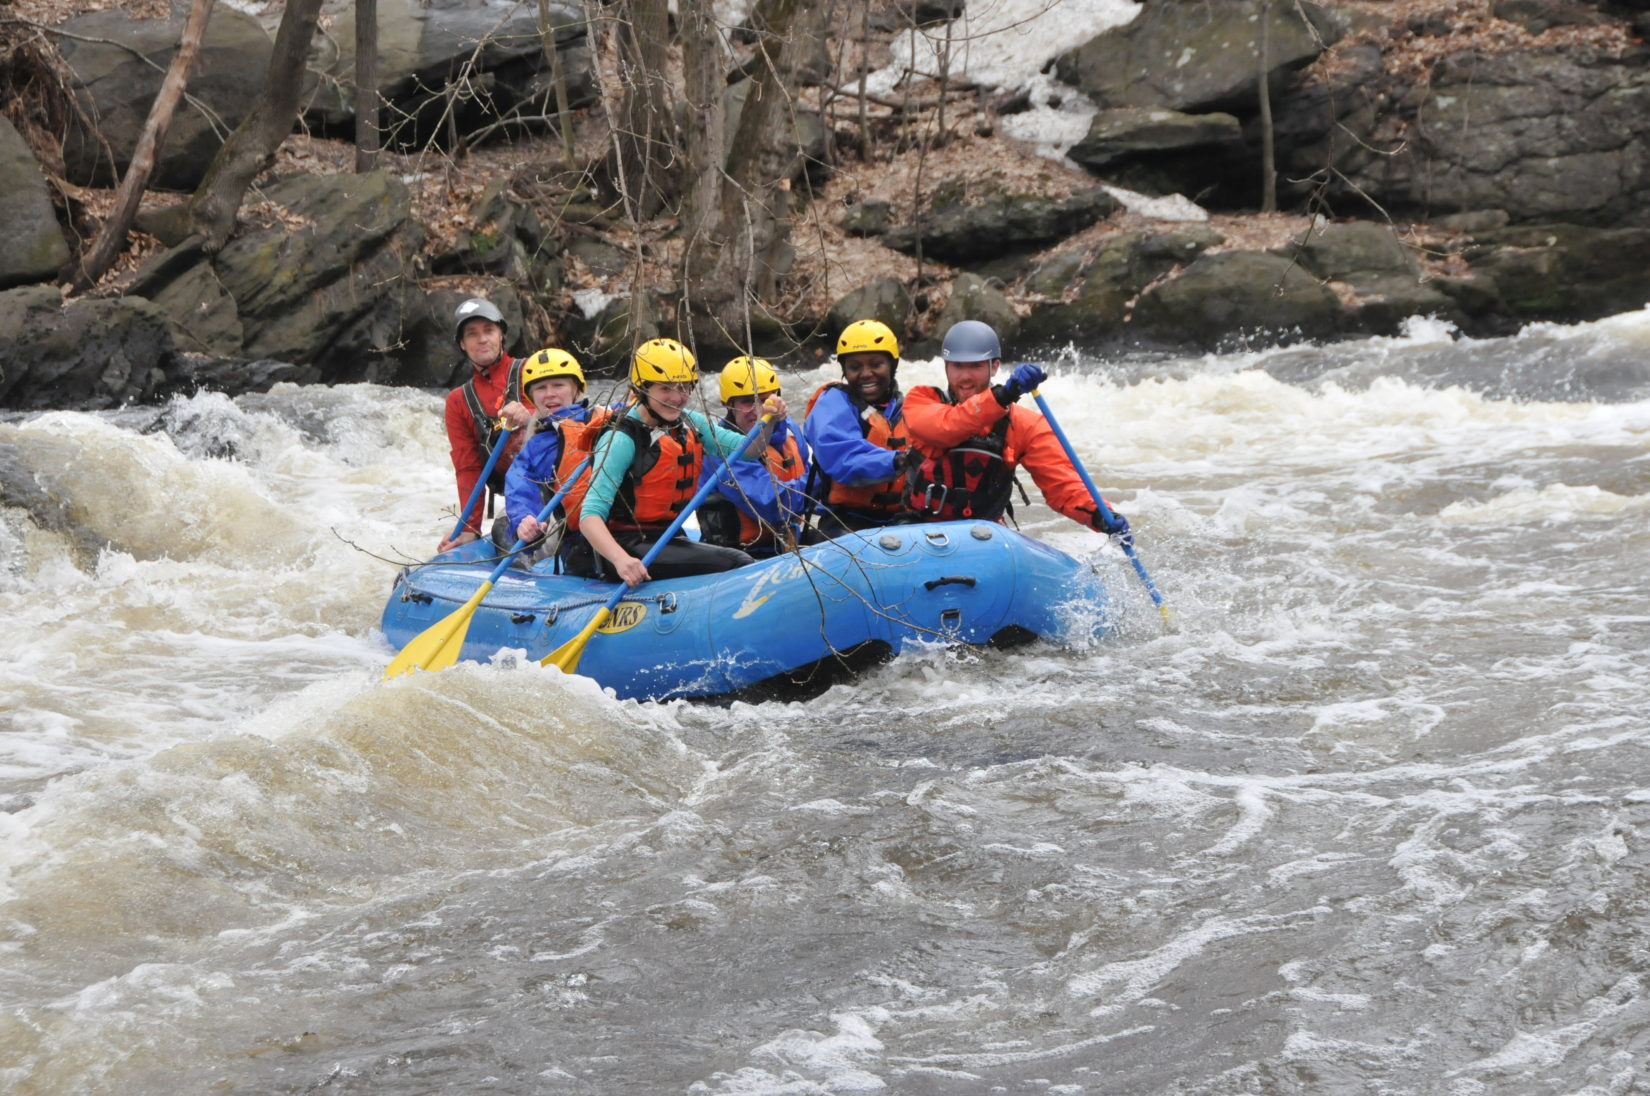 whitewater, rafting, Concord River, adventure, Lowell, outdoors, rapids